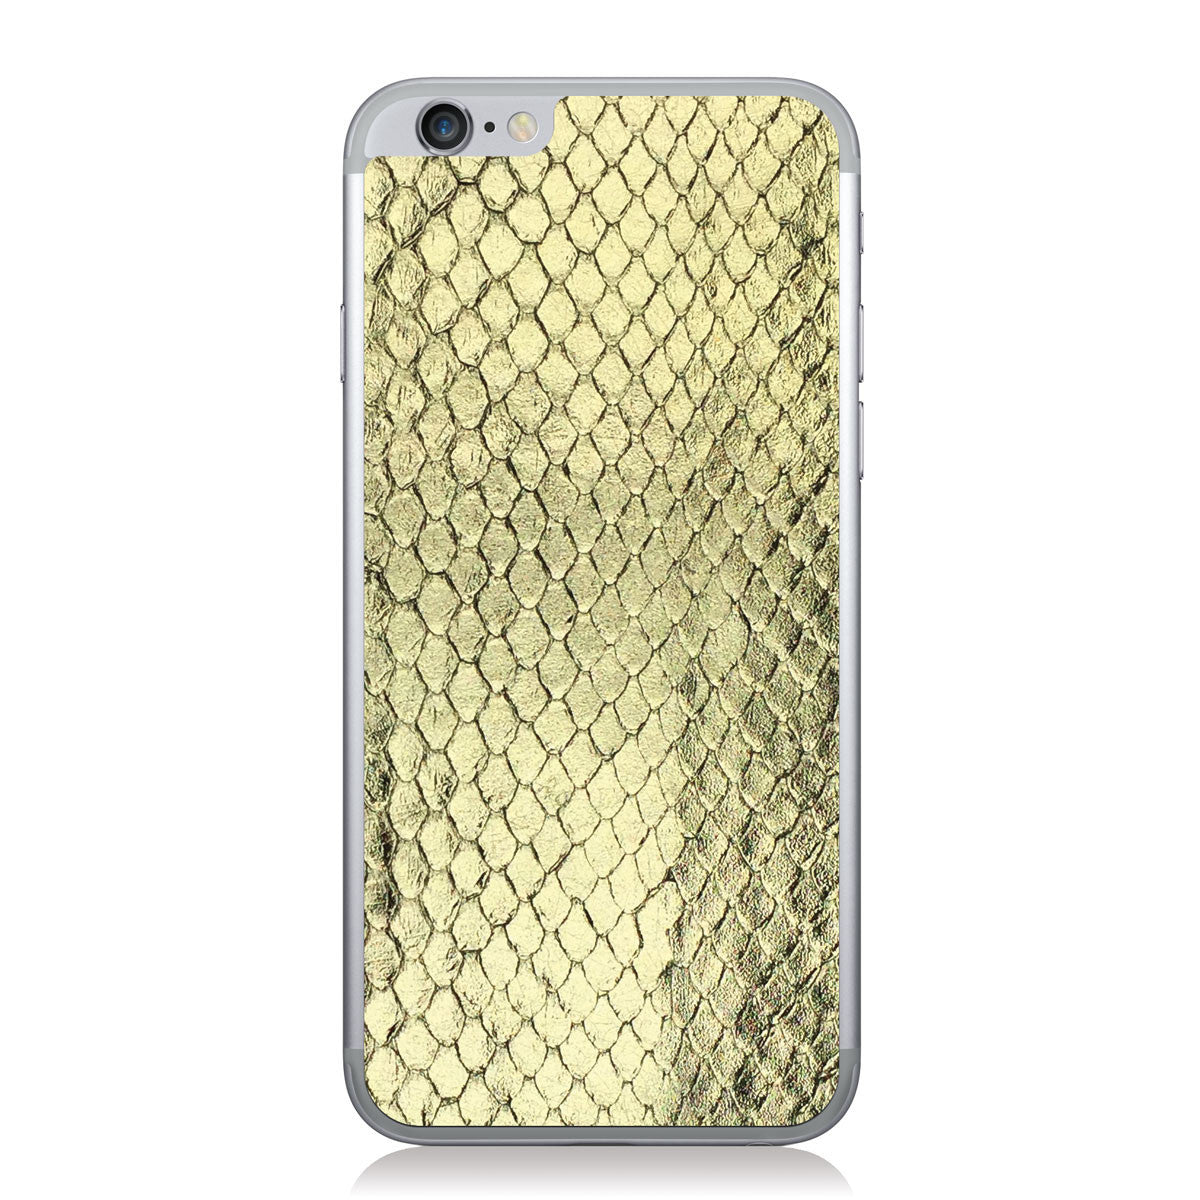 Gold Foil Anaconda iPhone 6/6s Leather Skin